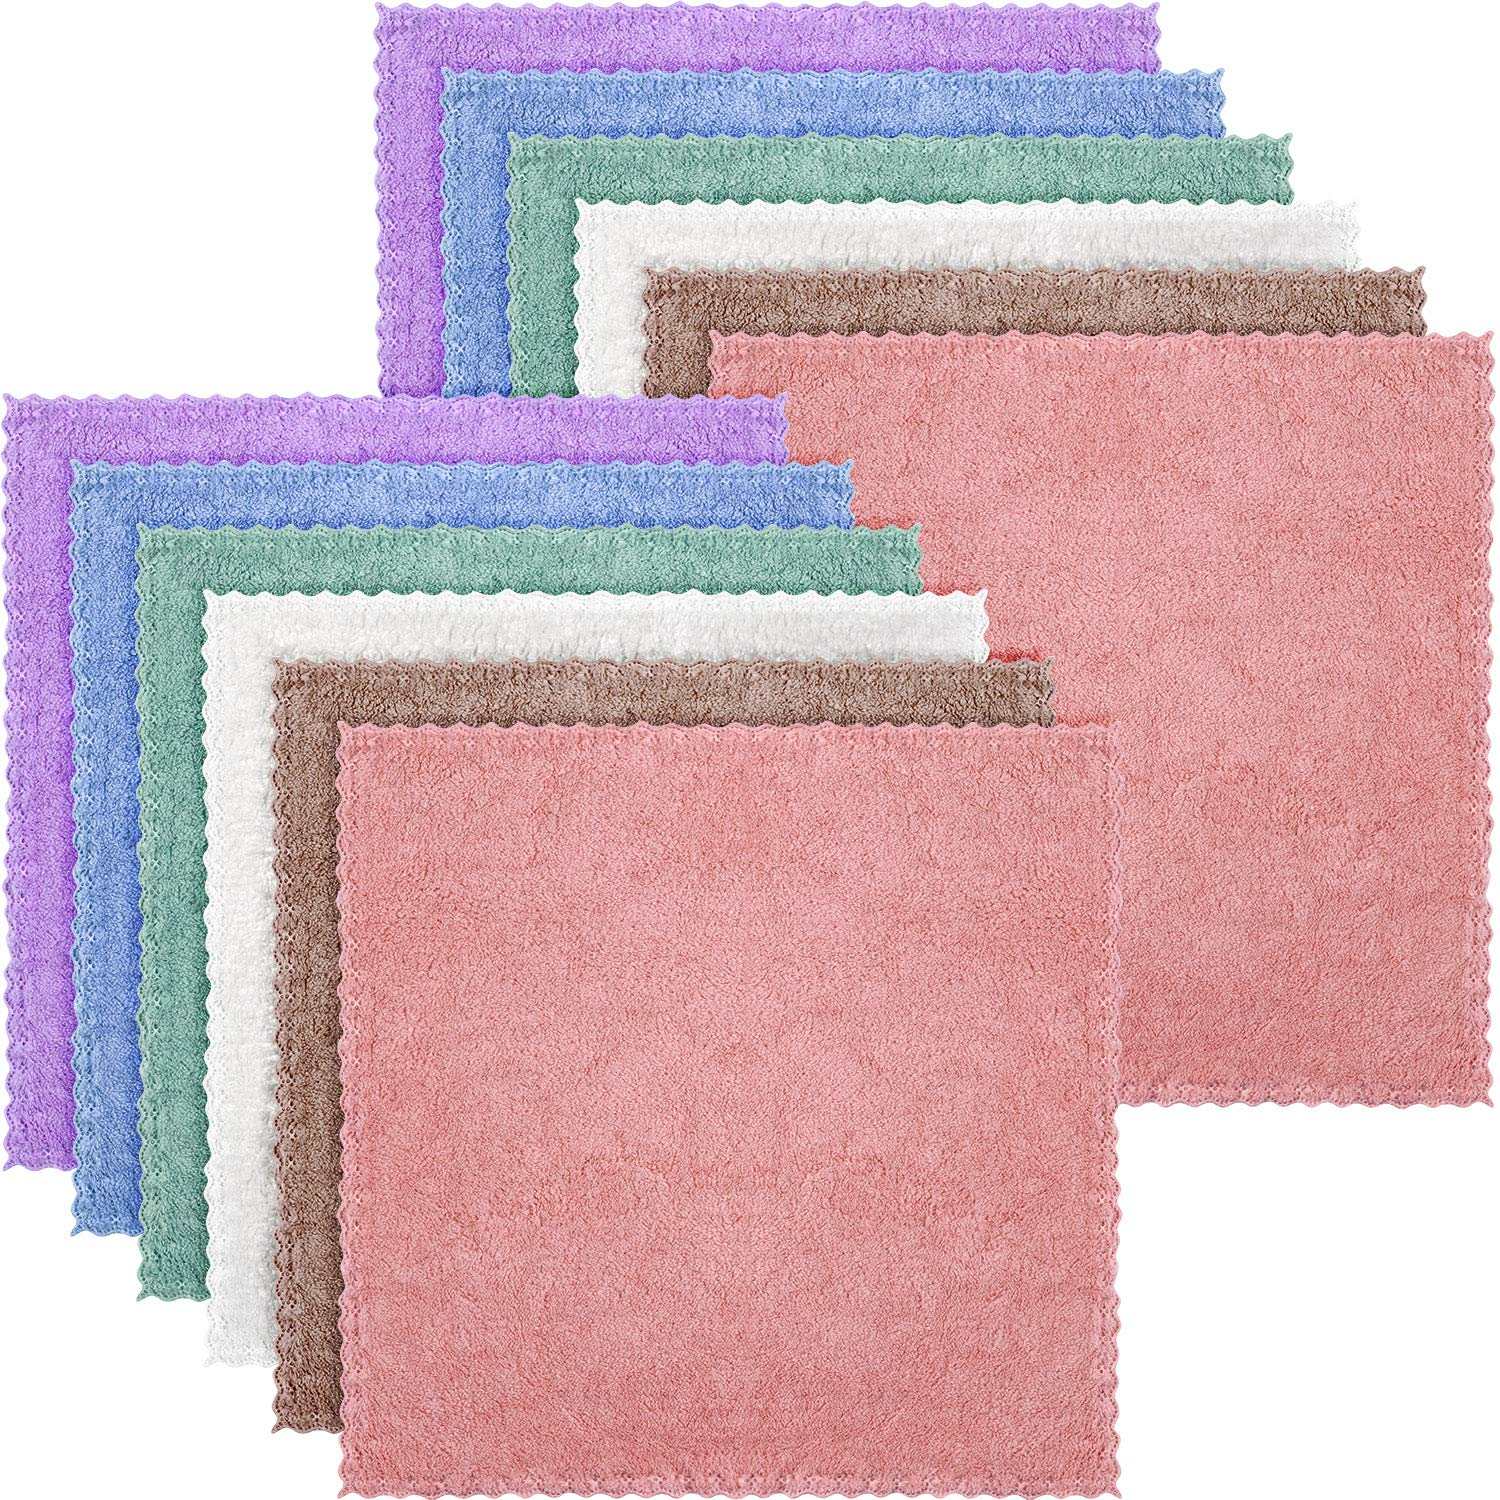 Face Cloths Microfiber Wash Cloth Facial Cleansing Cloth for Face, Soft (10 x 10 Inch, 12 Pieces)